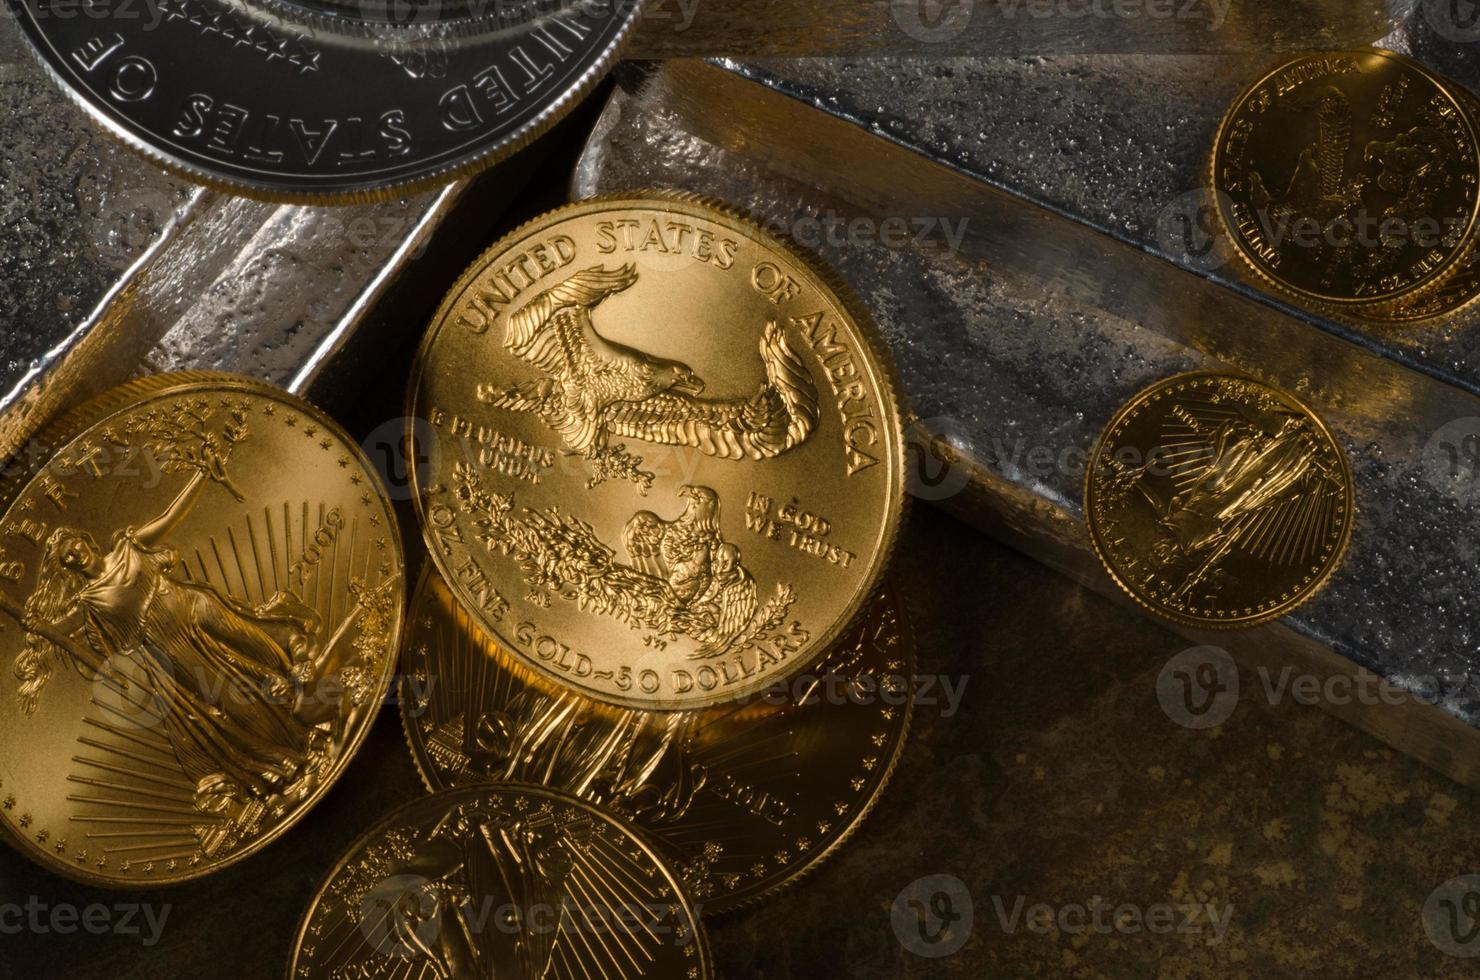 American Gold Eagle & Silver Eagle Coins with Silver Bars photo